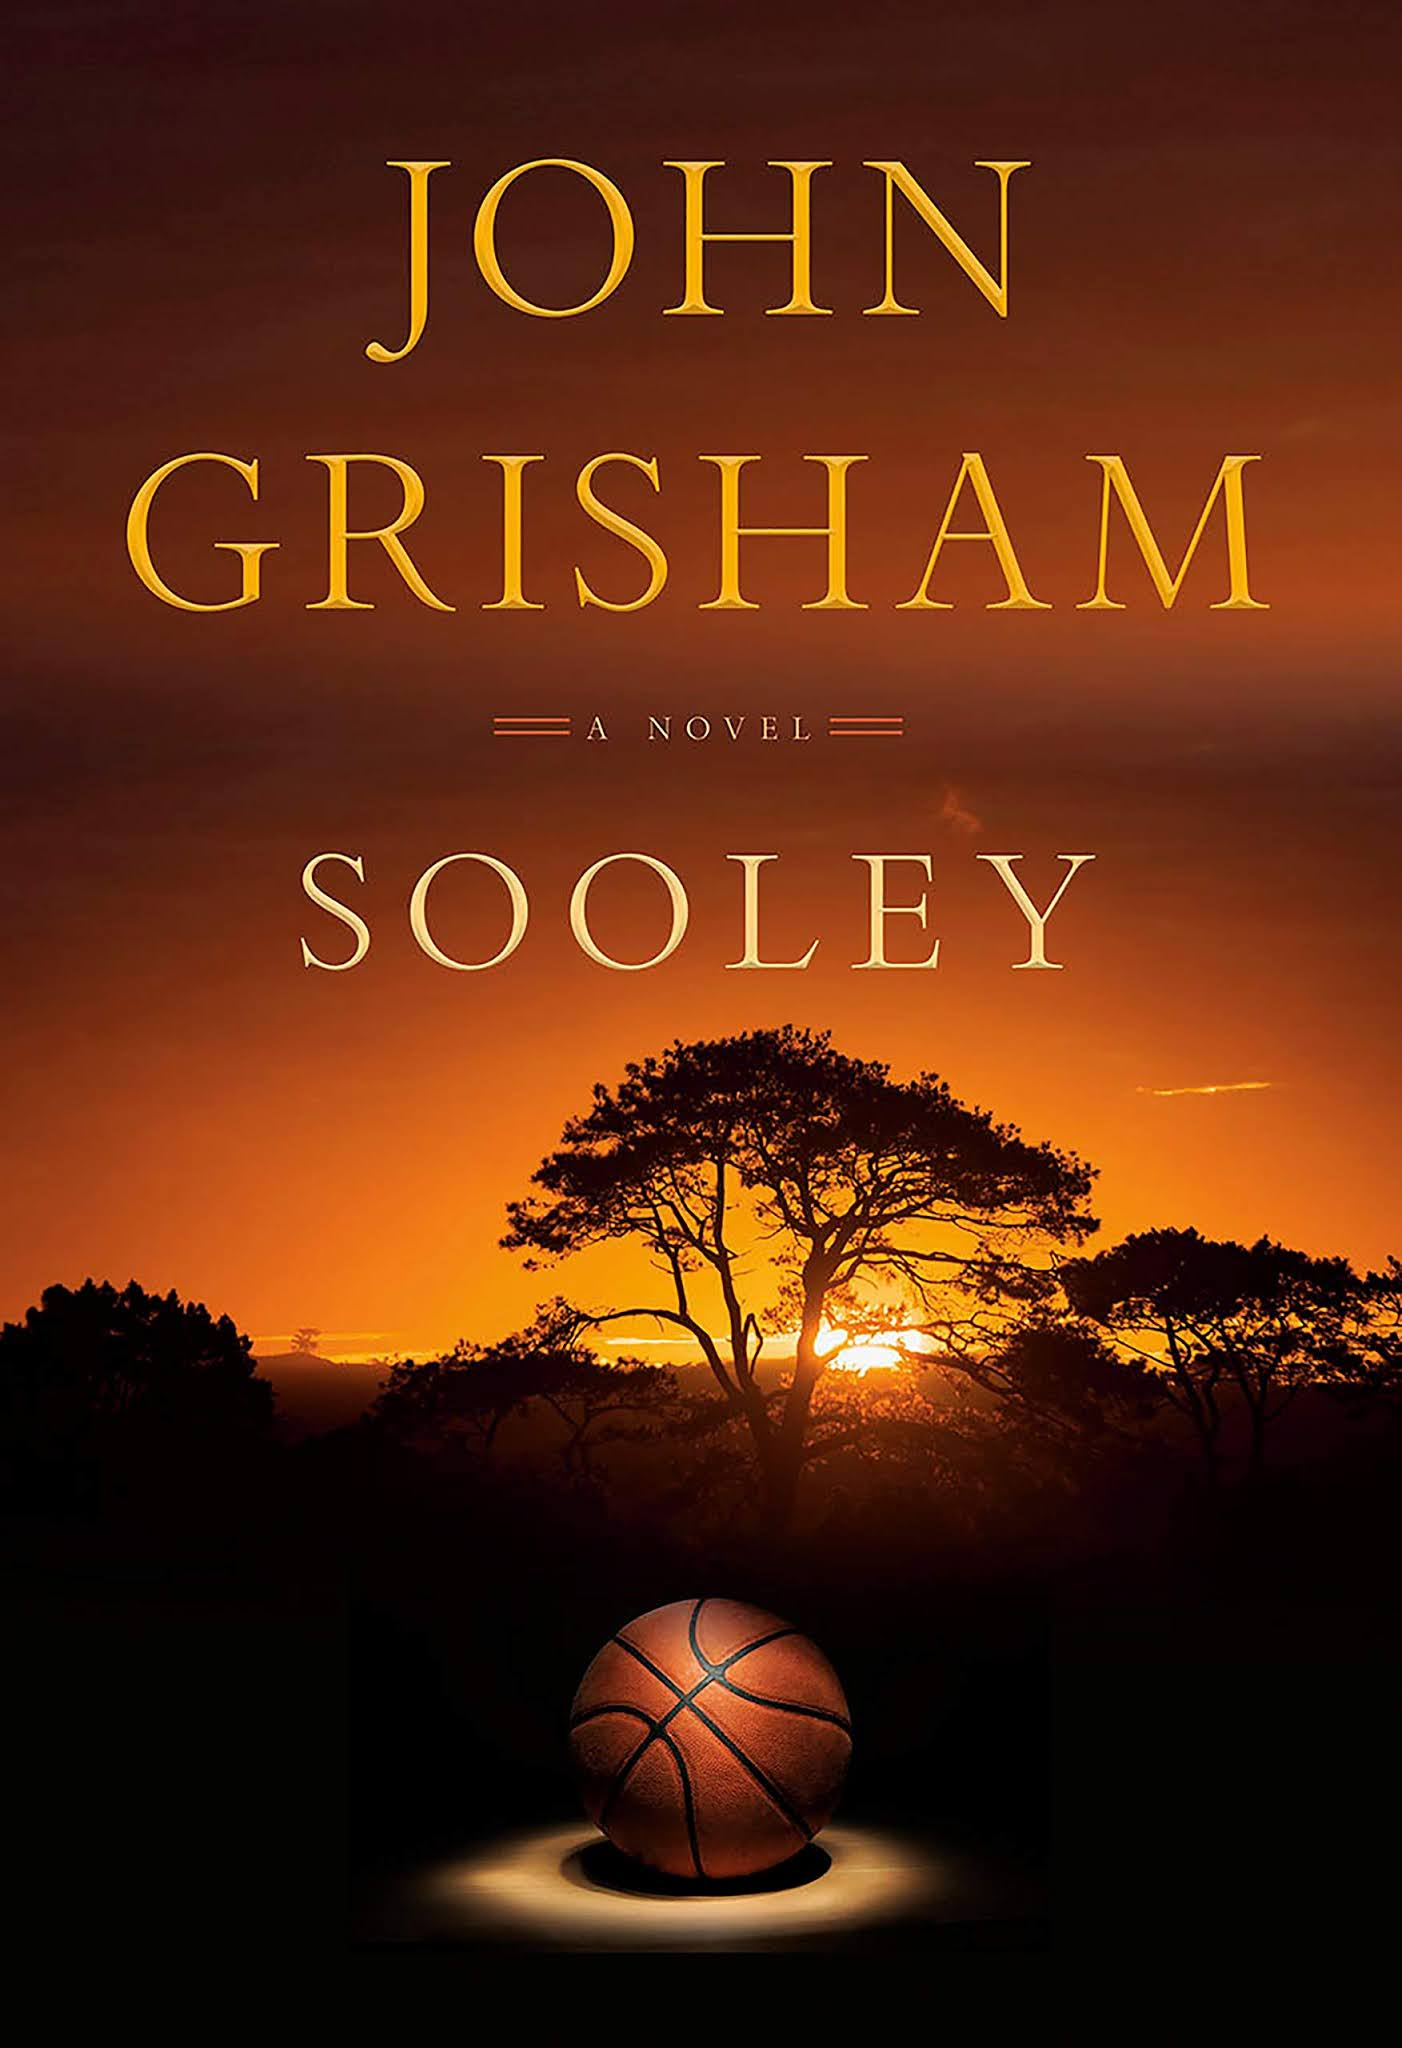 Sooley by John Grisham